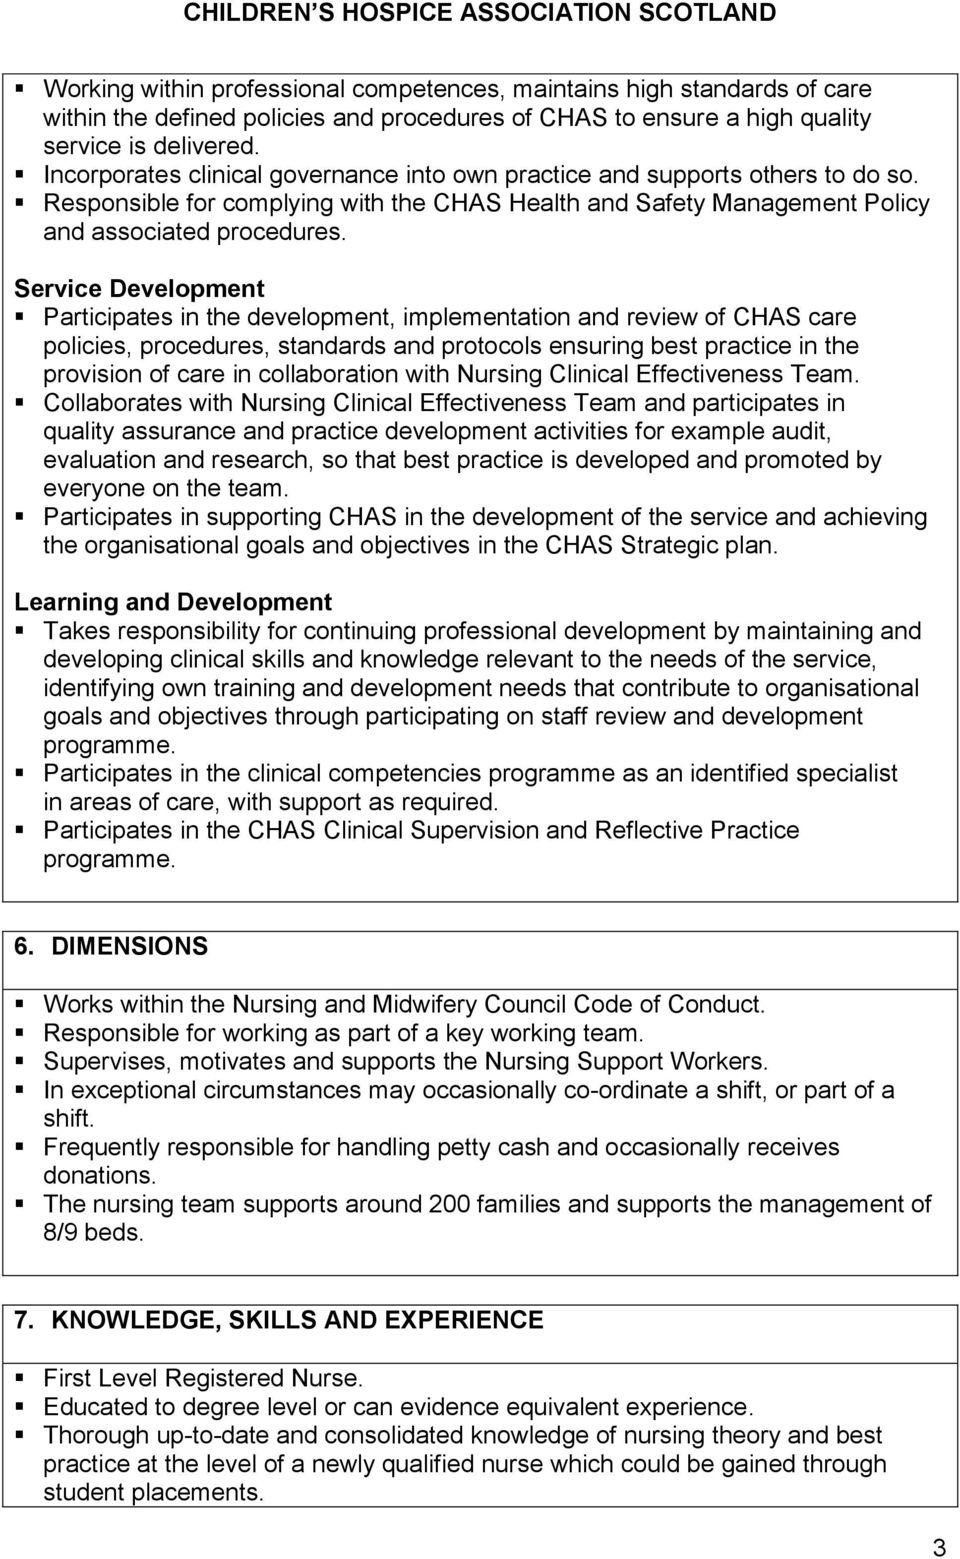 Service Development Participates in the development, implementation and review of CHAS care policies, procedures, standards and protocols ensuring best practice in the provision of care in